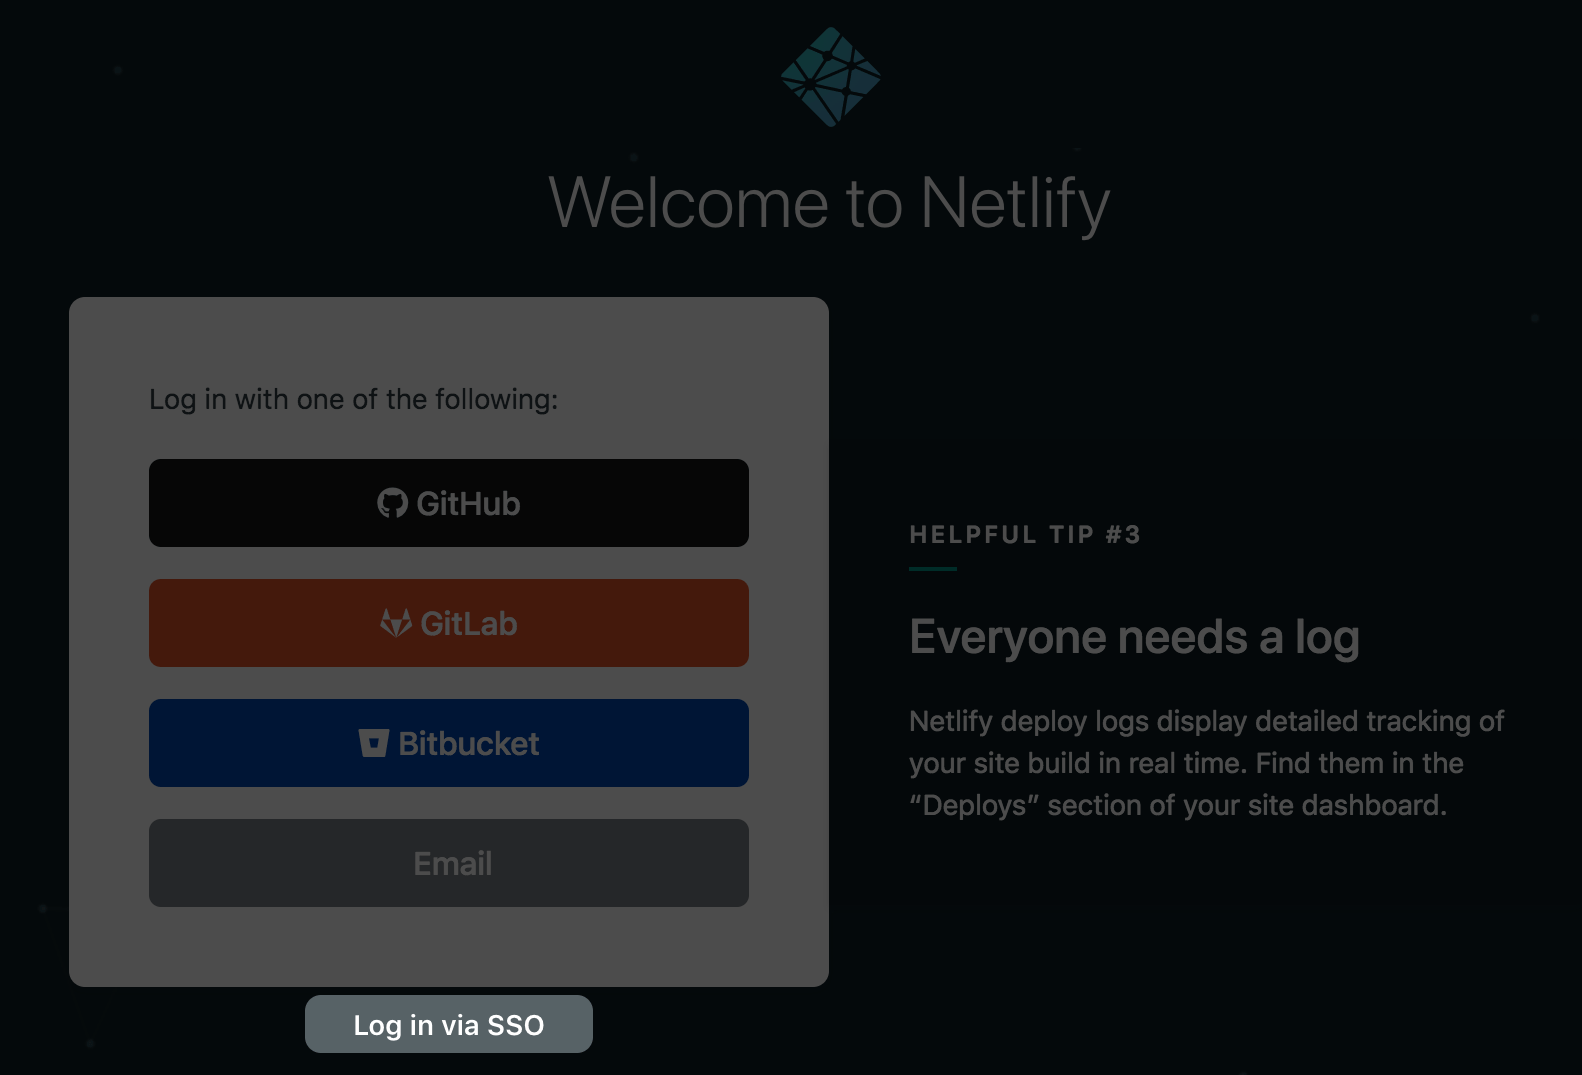 The standard Netlify login interface includes a link to log in via SSO.